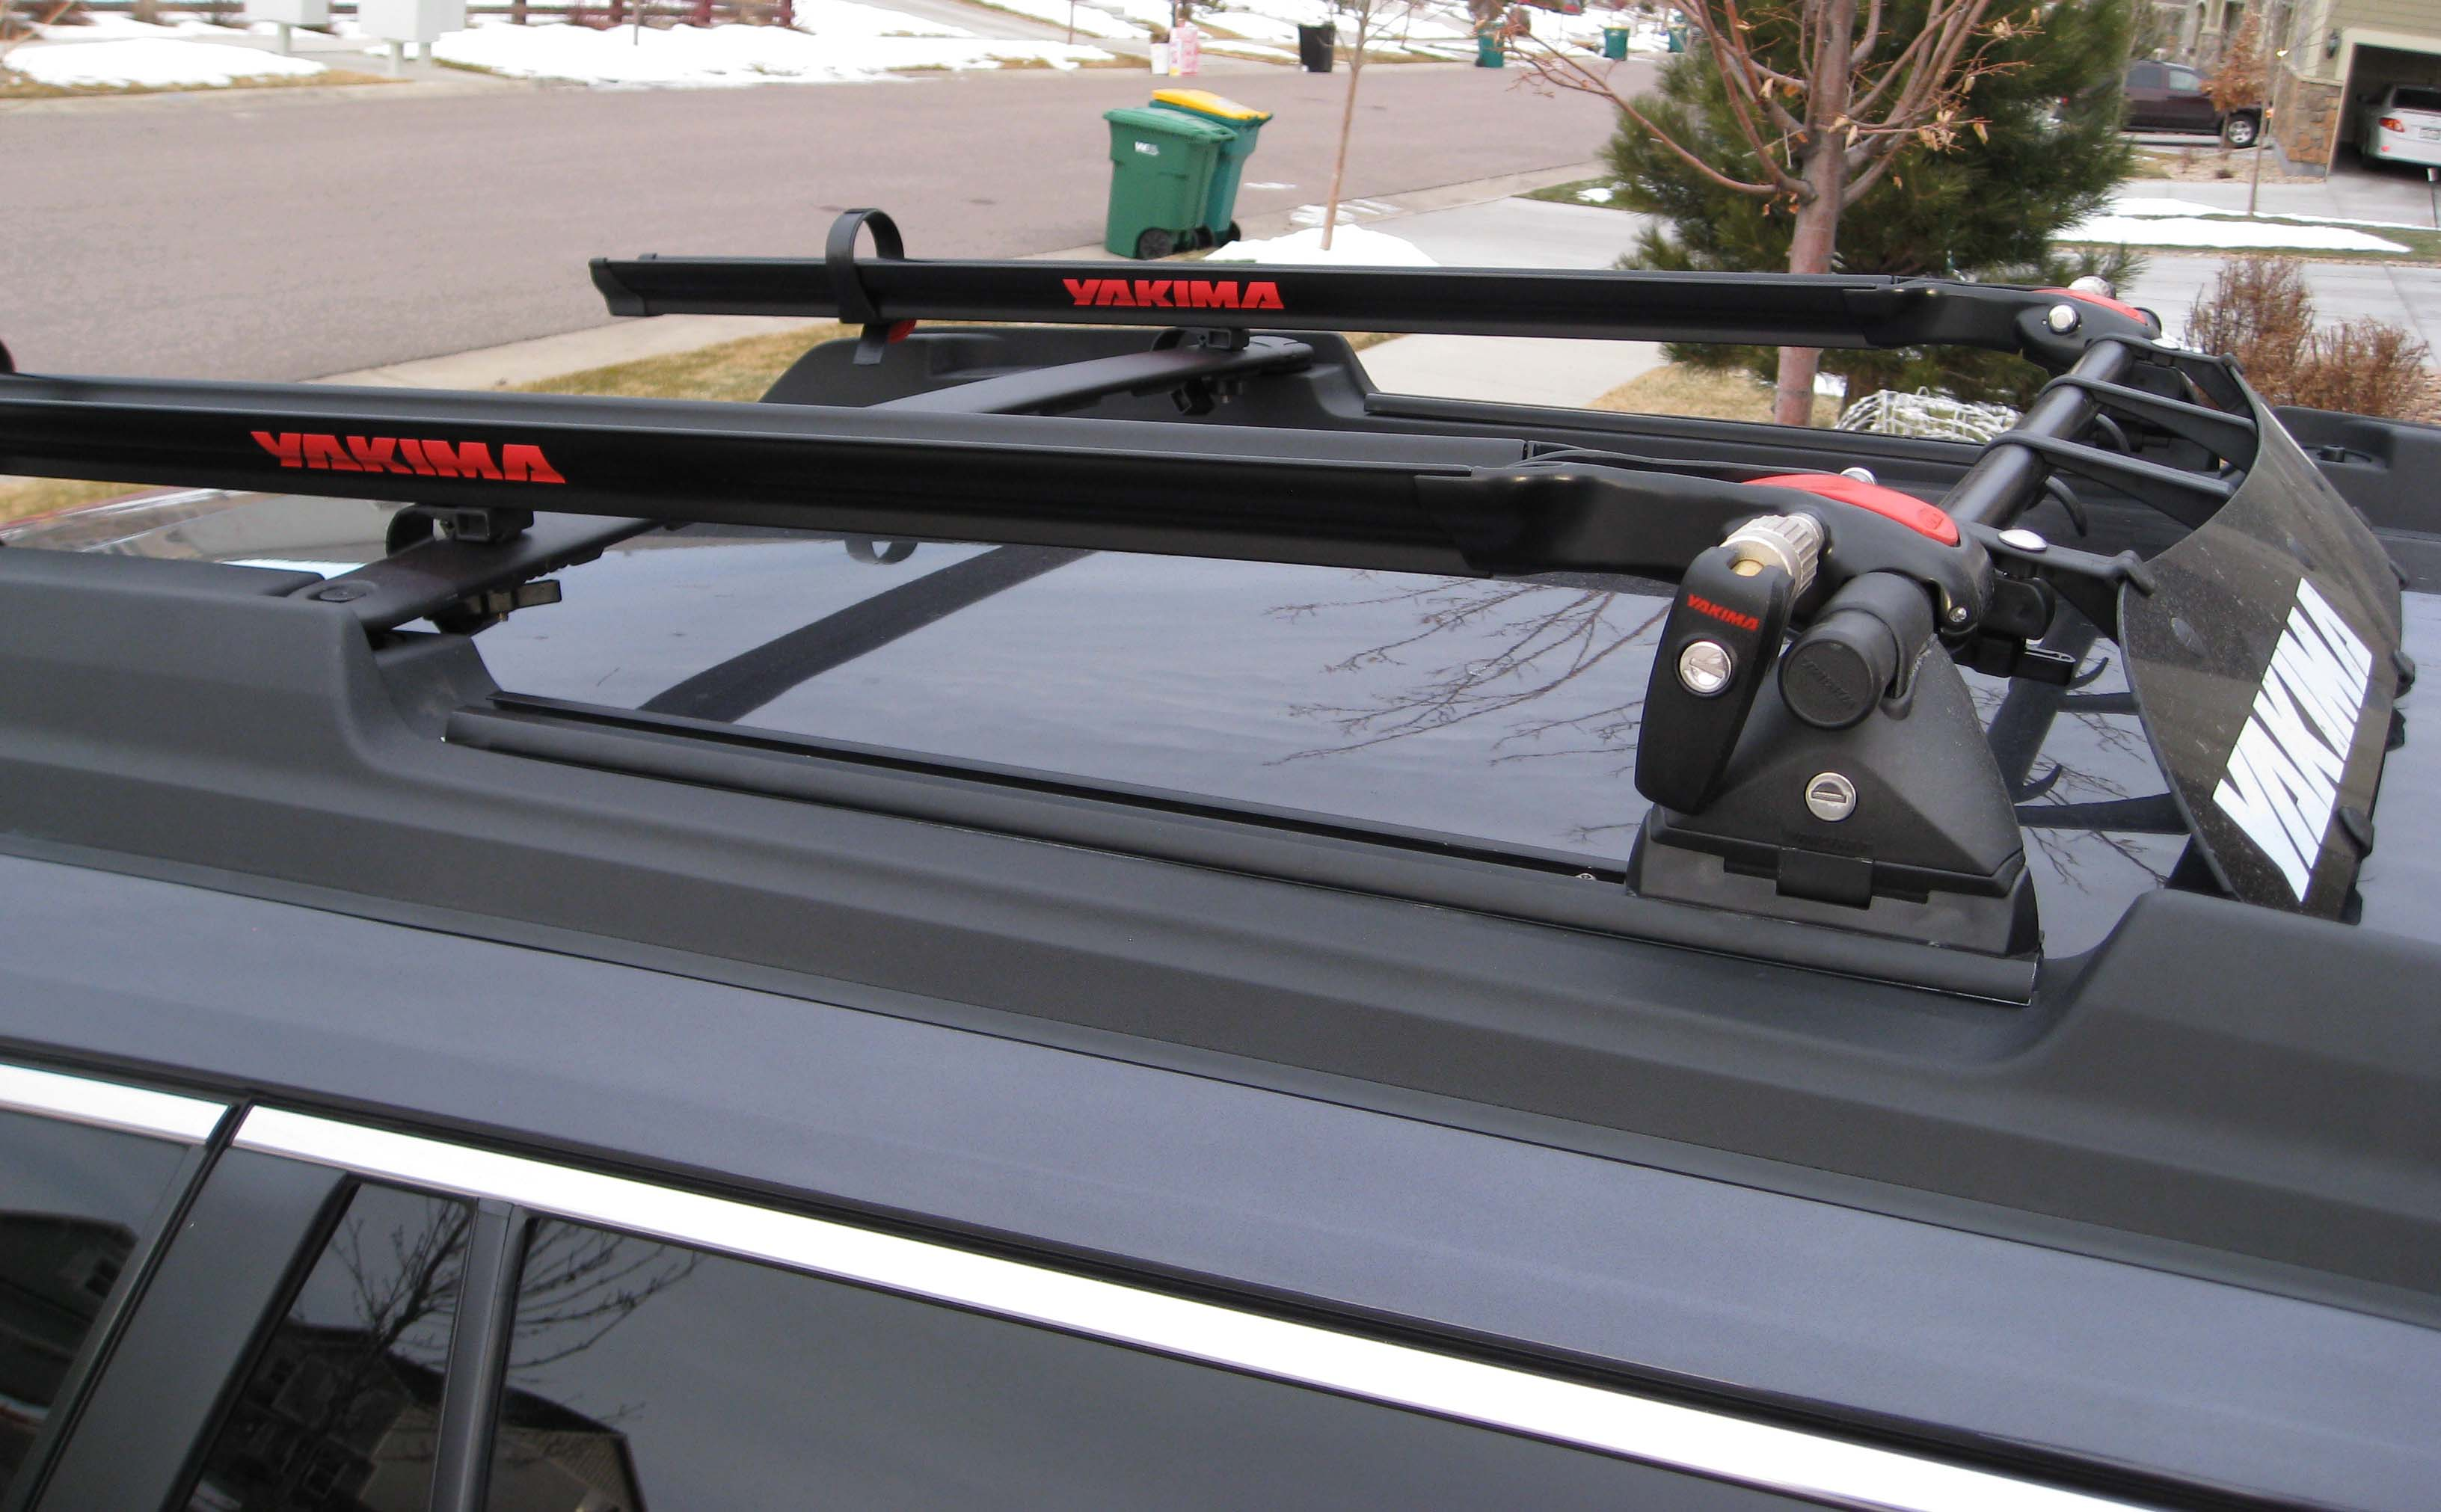 Subaru Outback Roof Rack >> Roof Rack: MOD for bike racks - Subaru Outback - Subaru Outback Forums